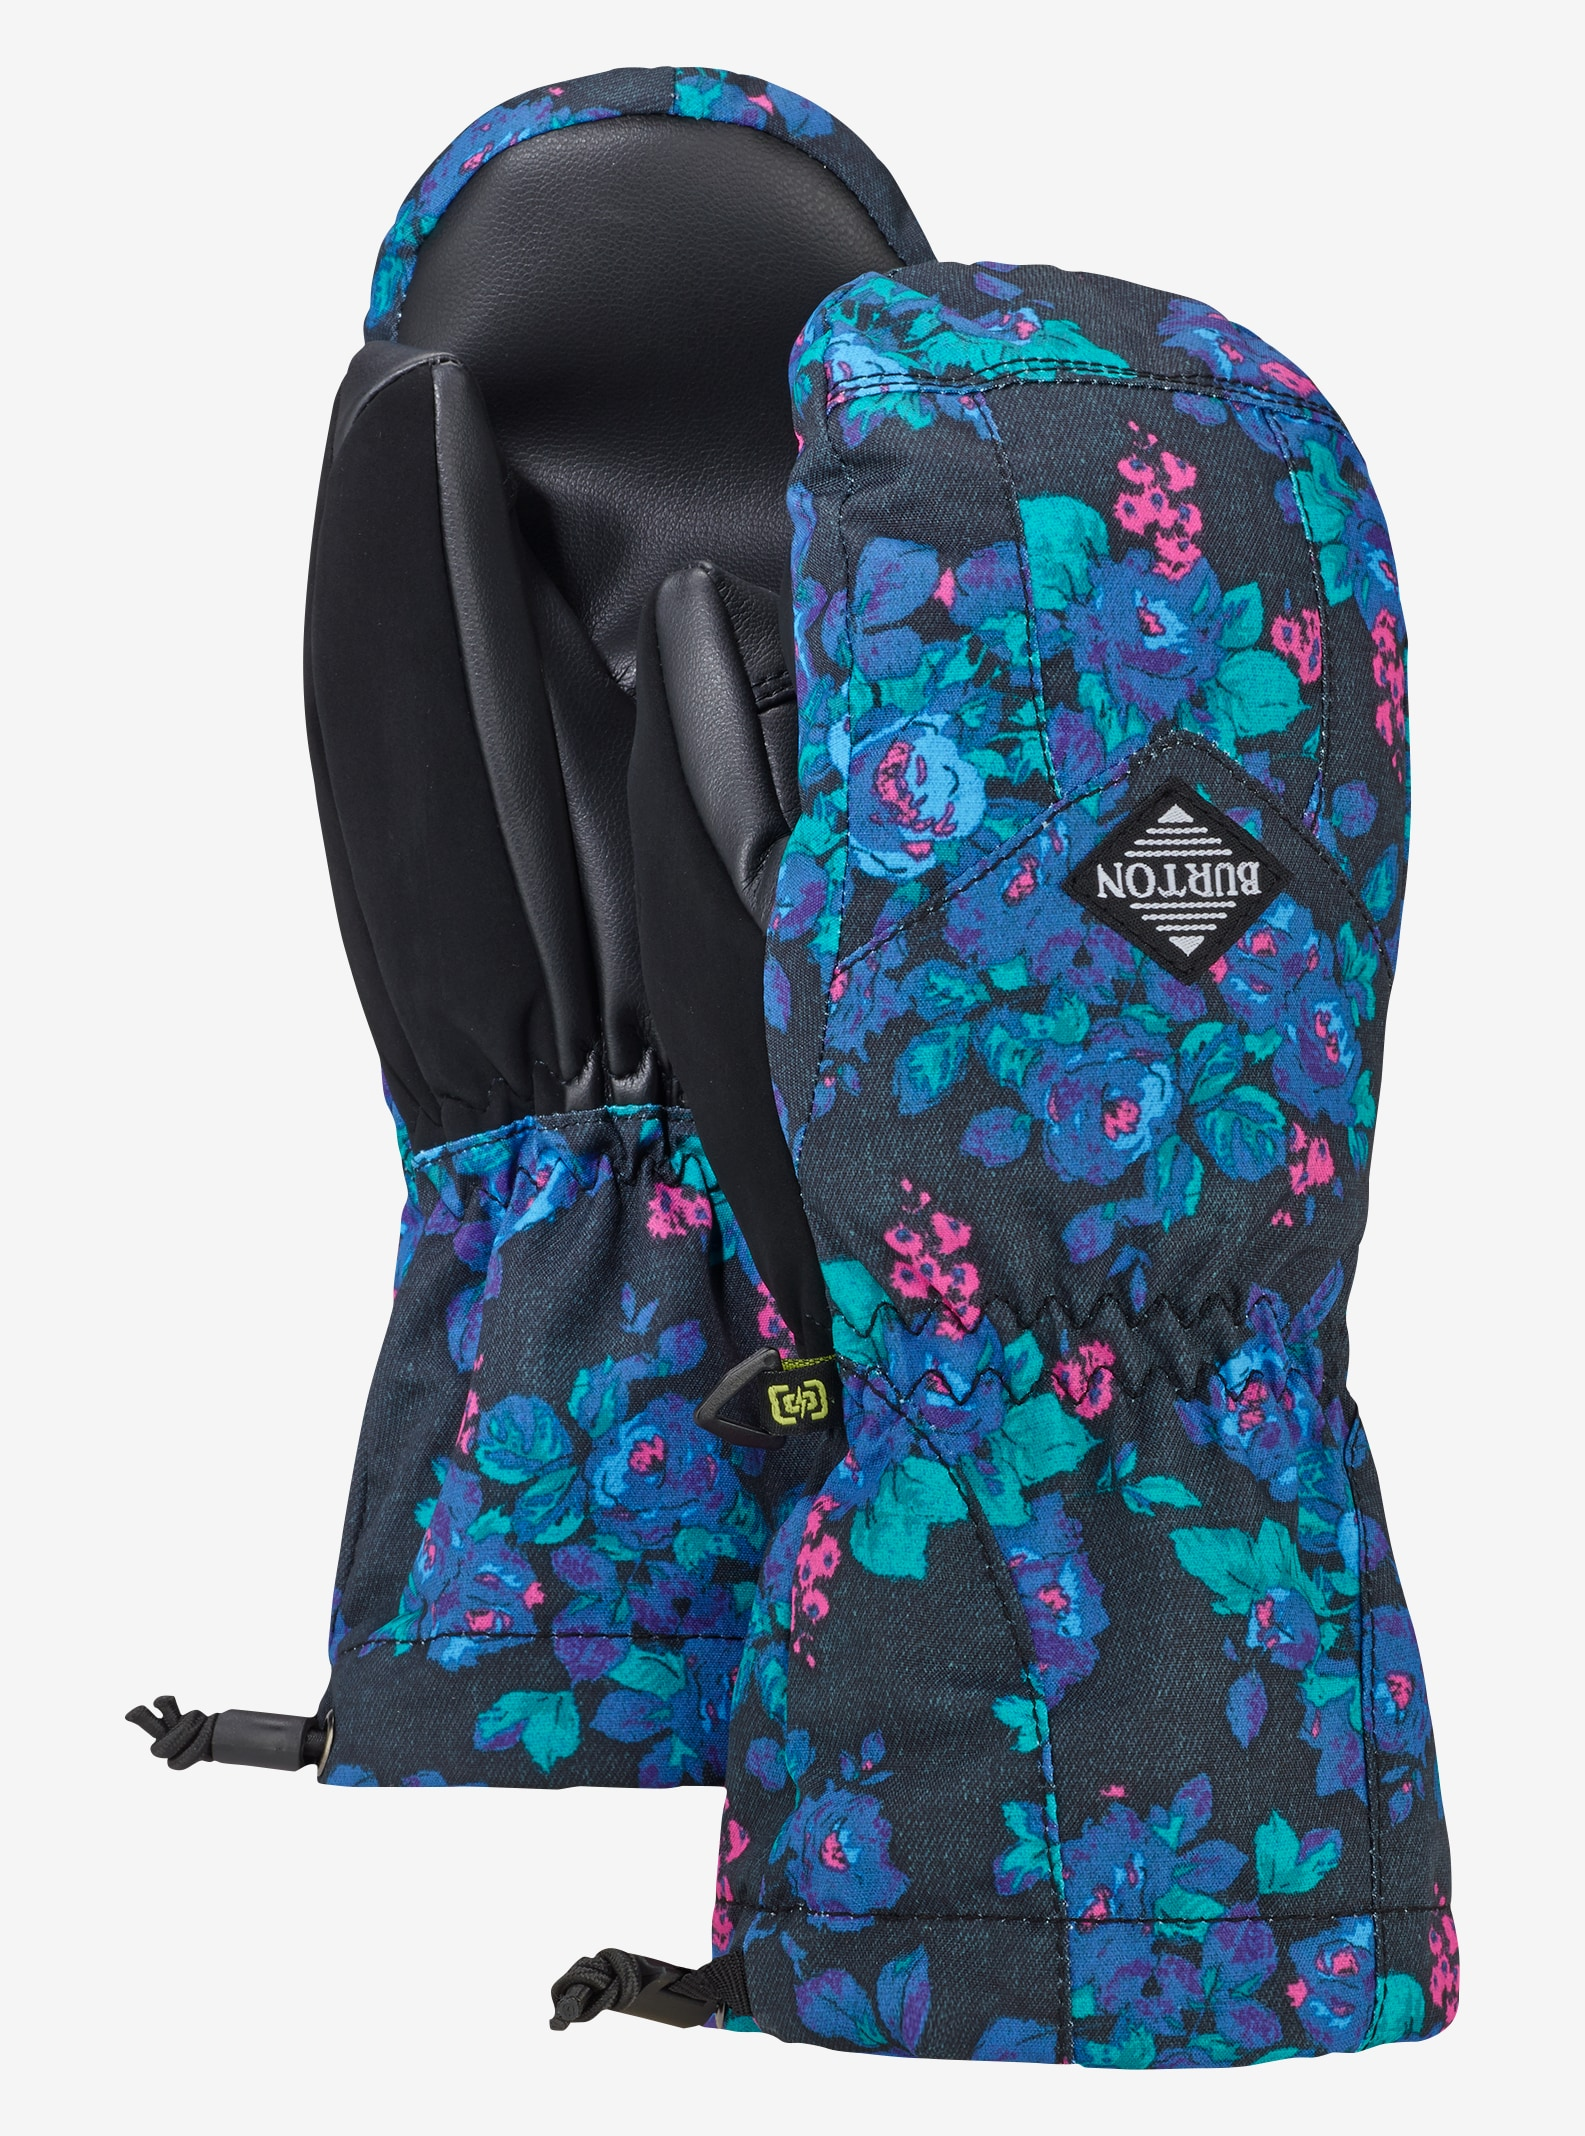 Kids' Burton Profile Mitt shown in Pop Floral